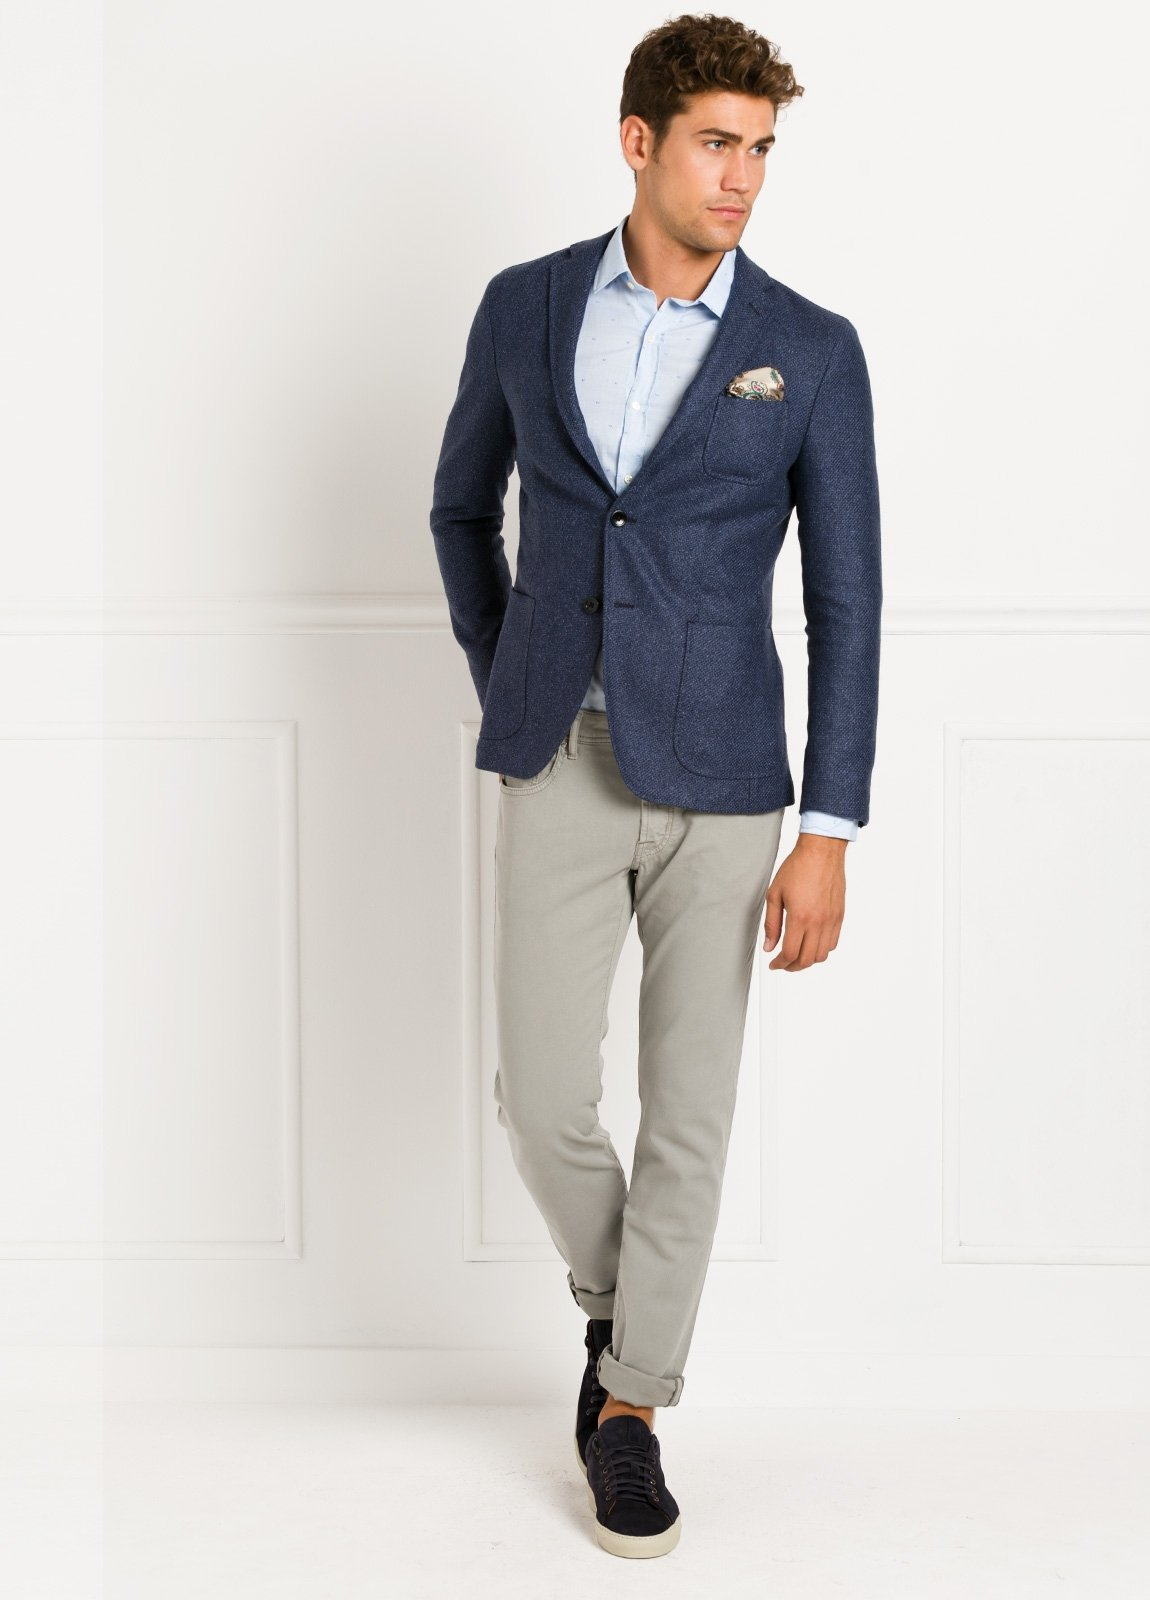 Americana SOFT JACKET Slim Fit, tejido textura color azul medio. 60% Lana virgen, 24% Poliamida, 16% seda.